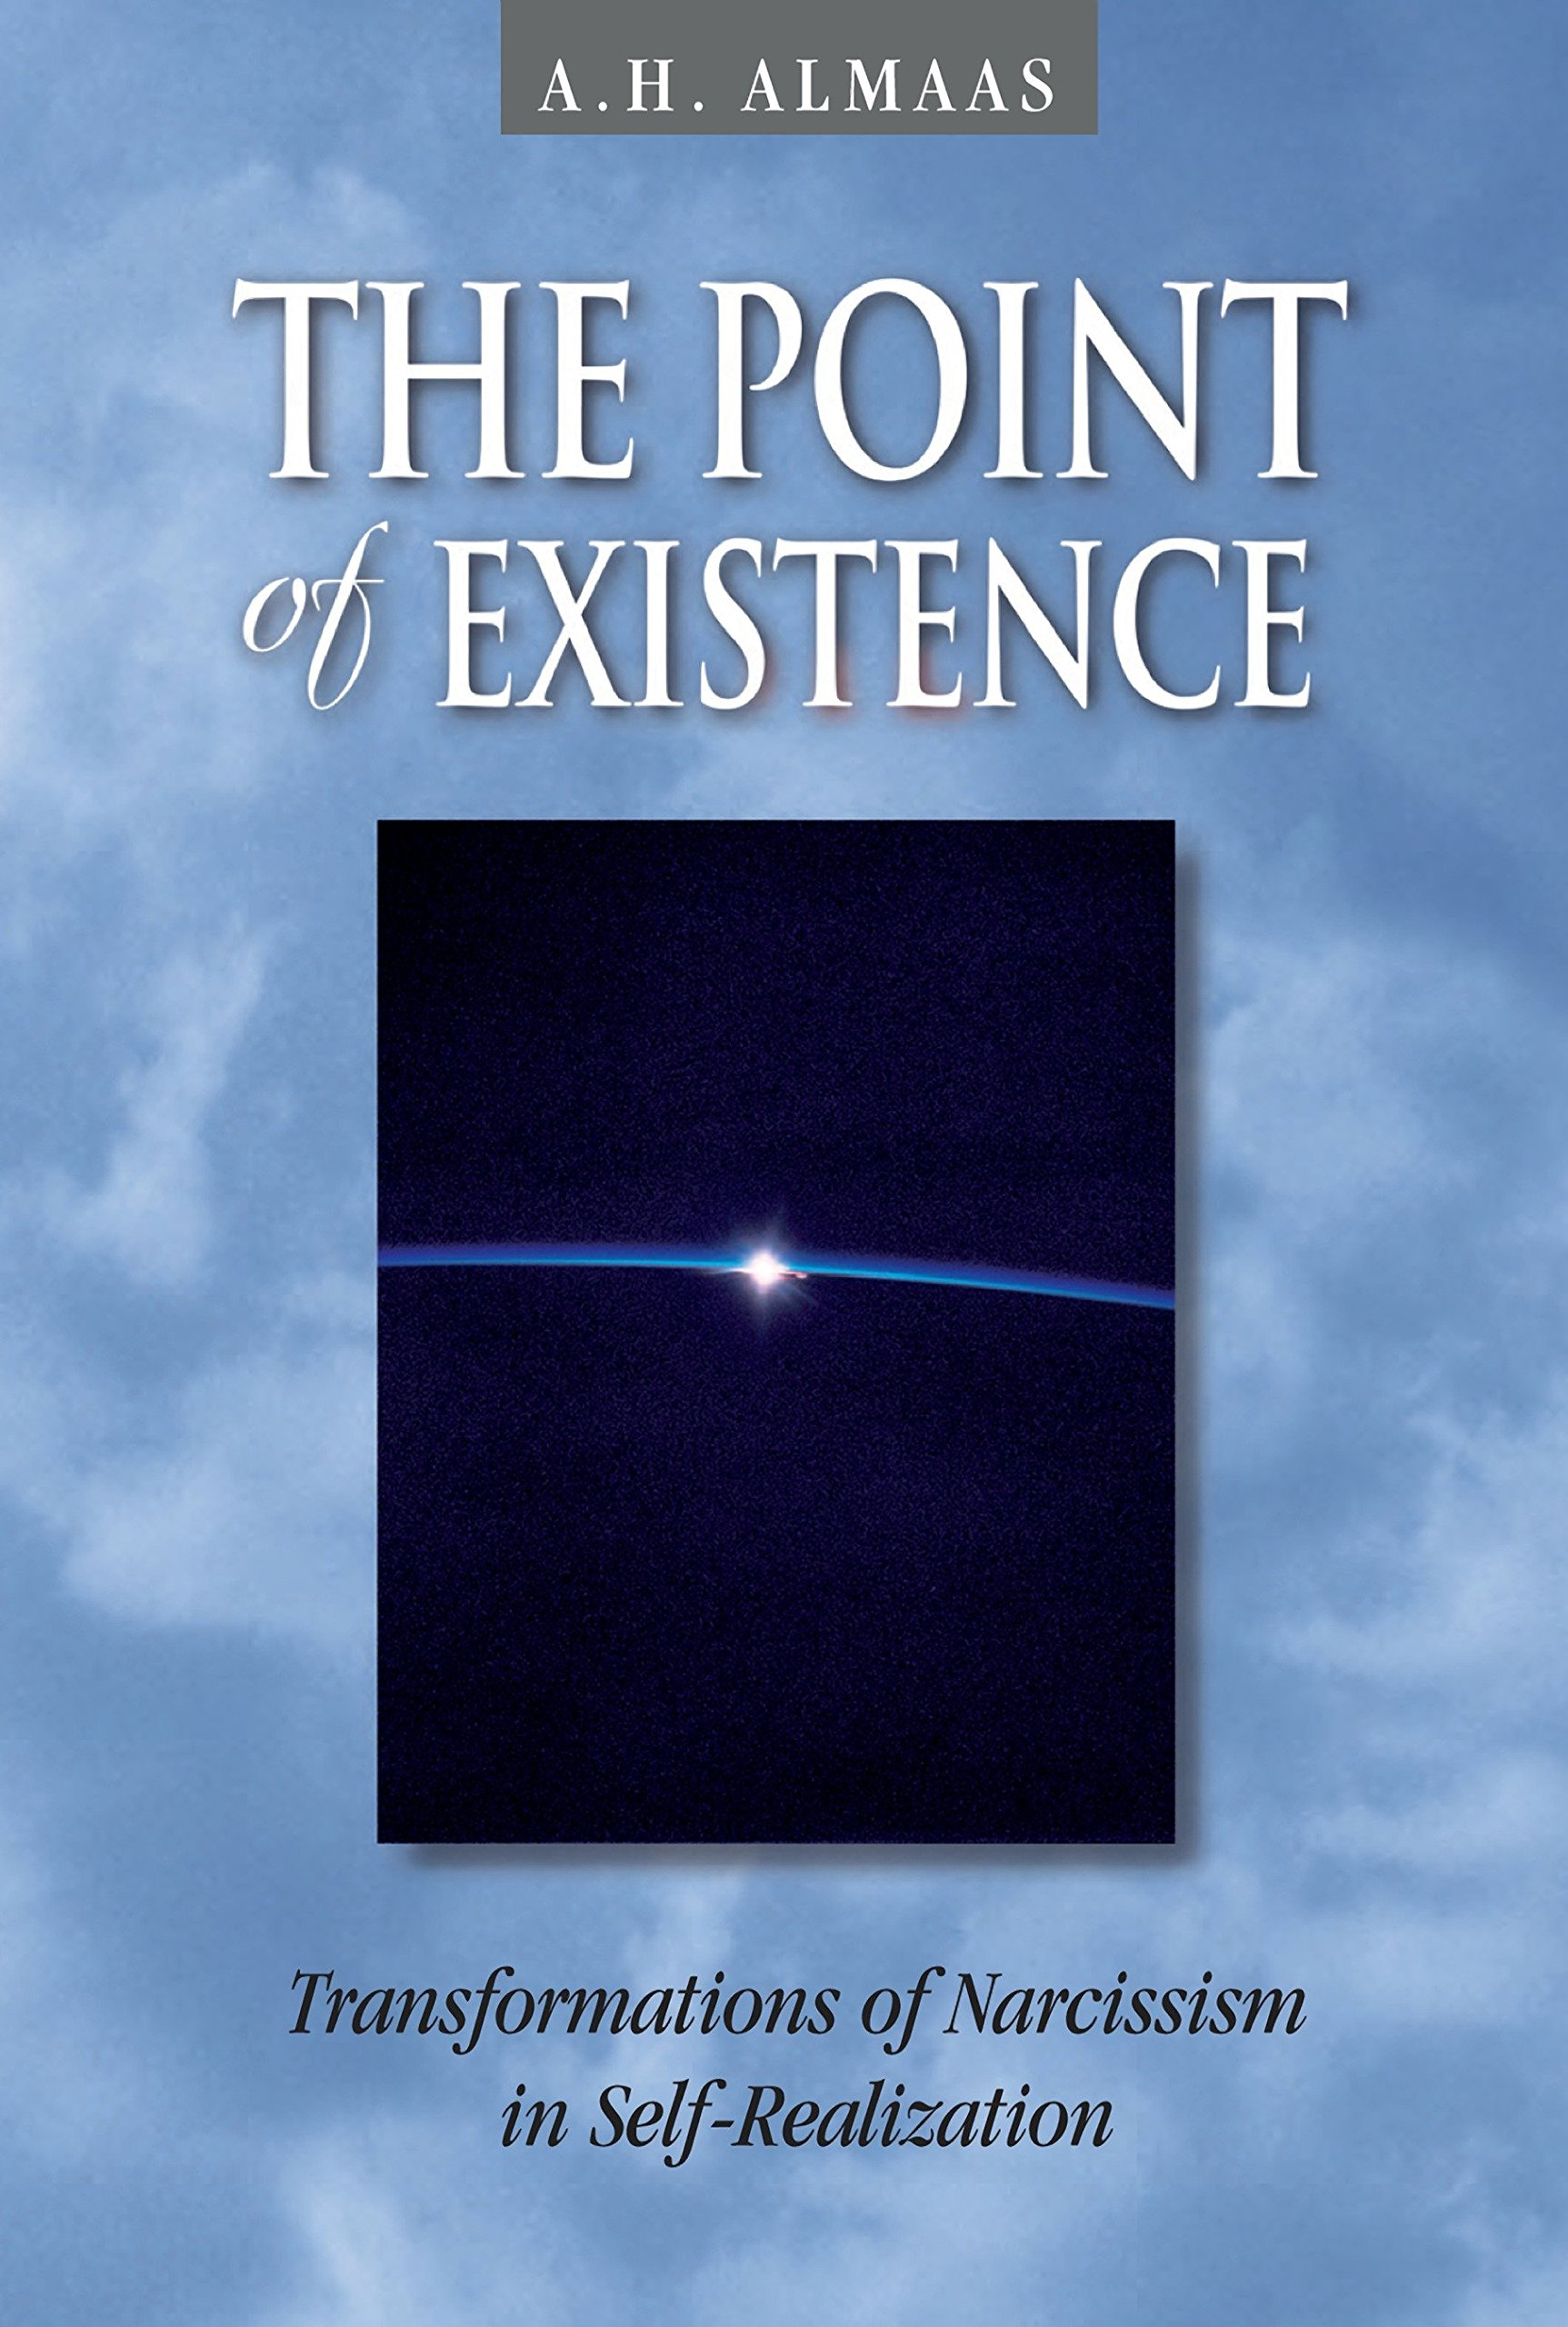 Download The Point of Existence: Transformations of Narcissism in Self-Realization (Diamond Mind Series, 3) PDF